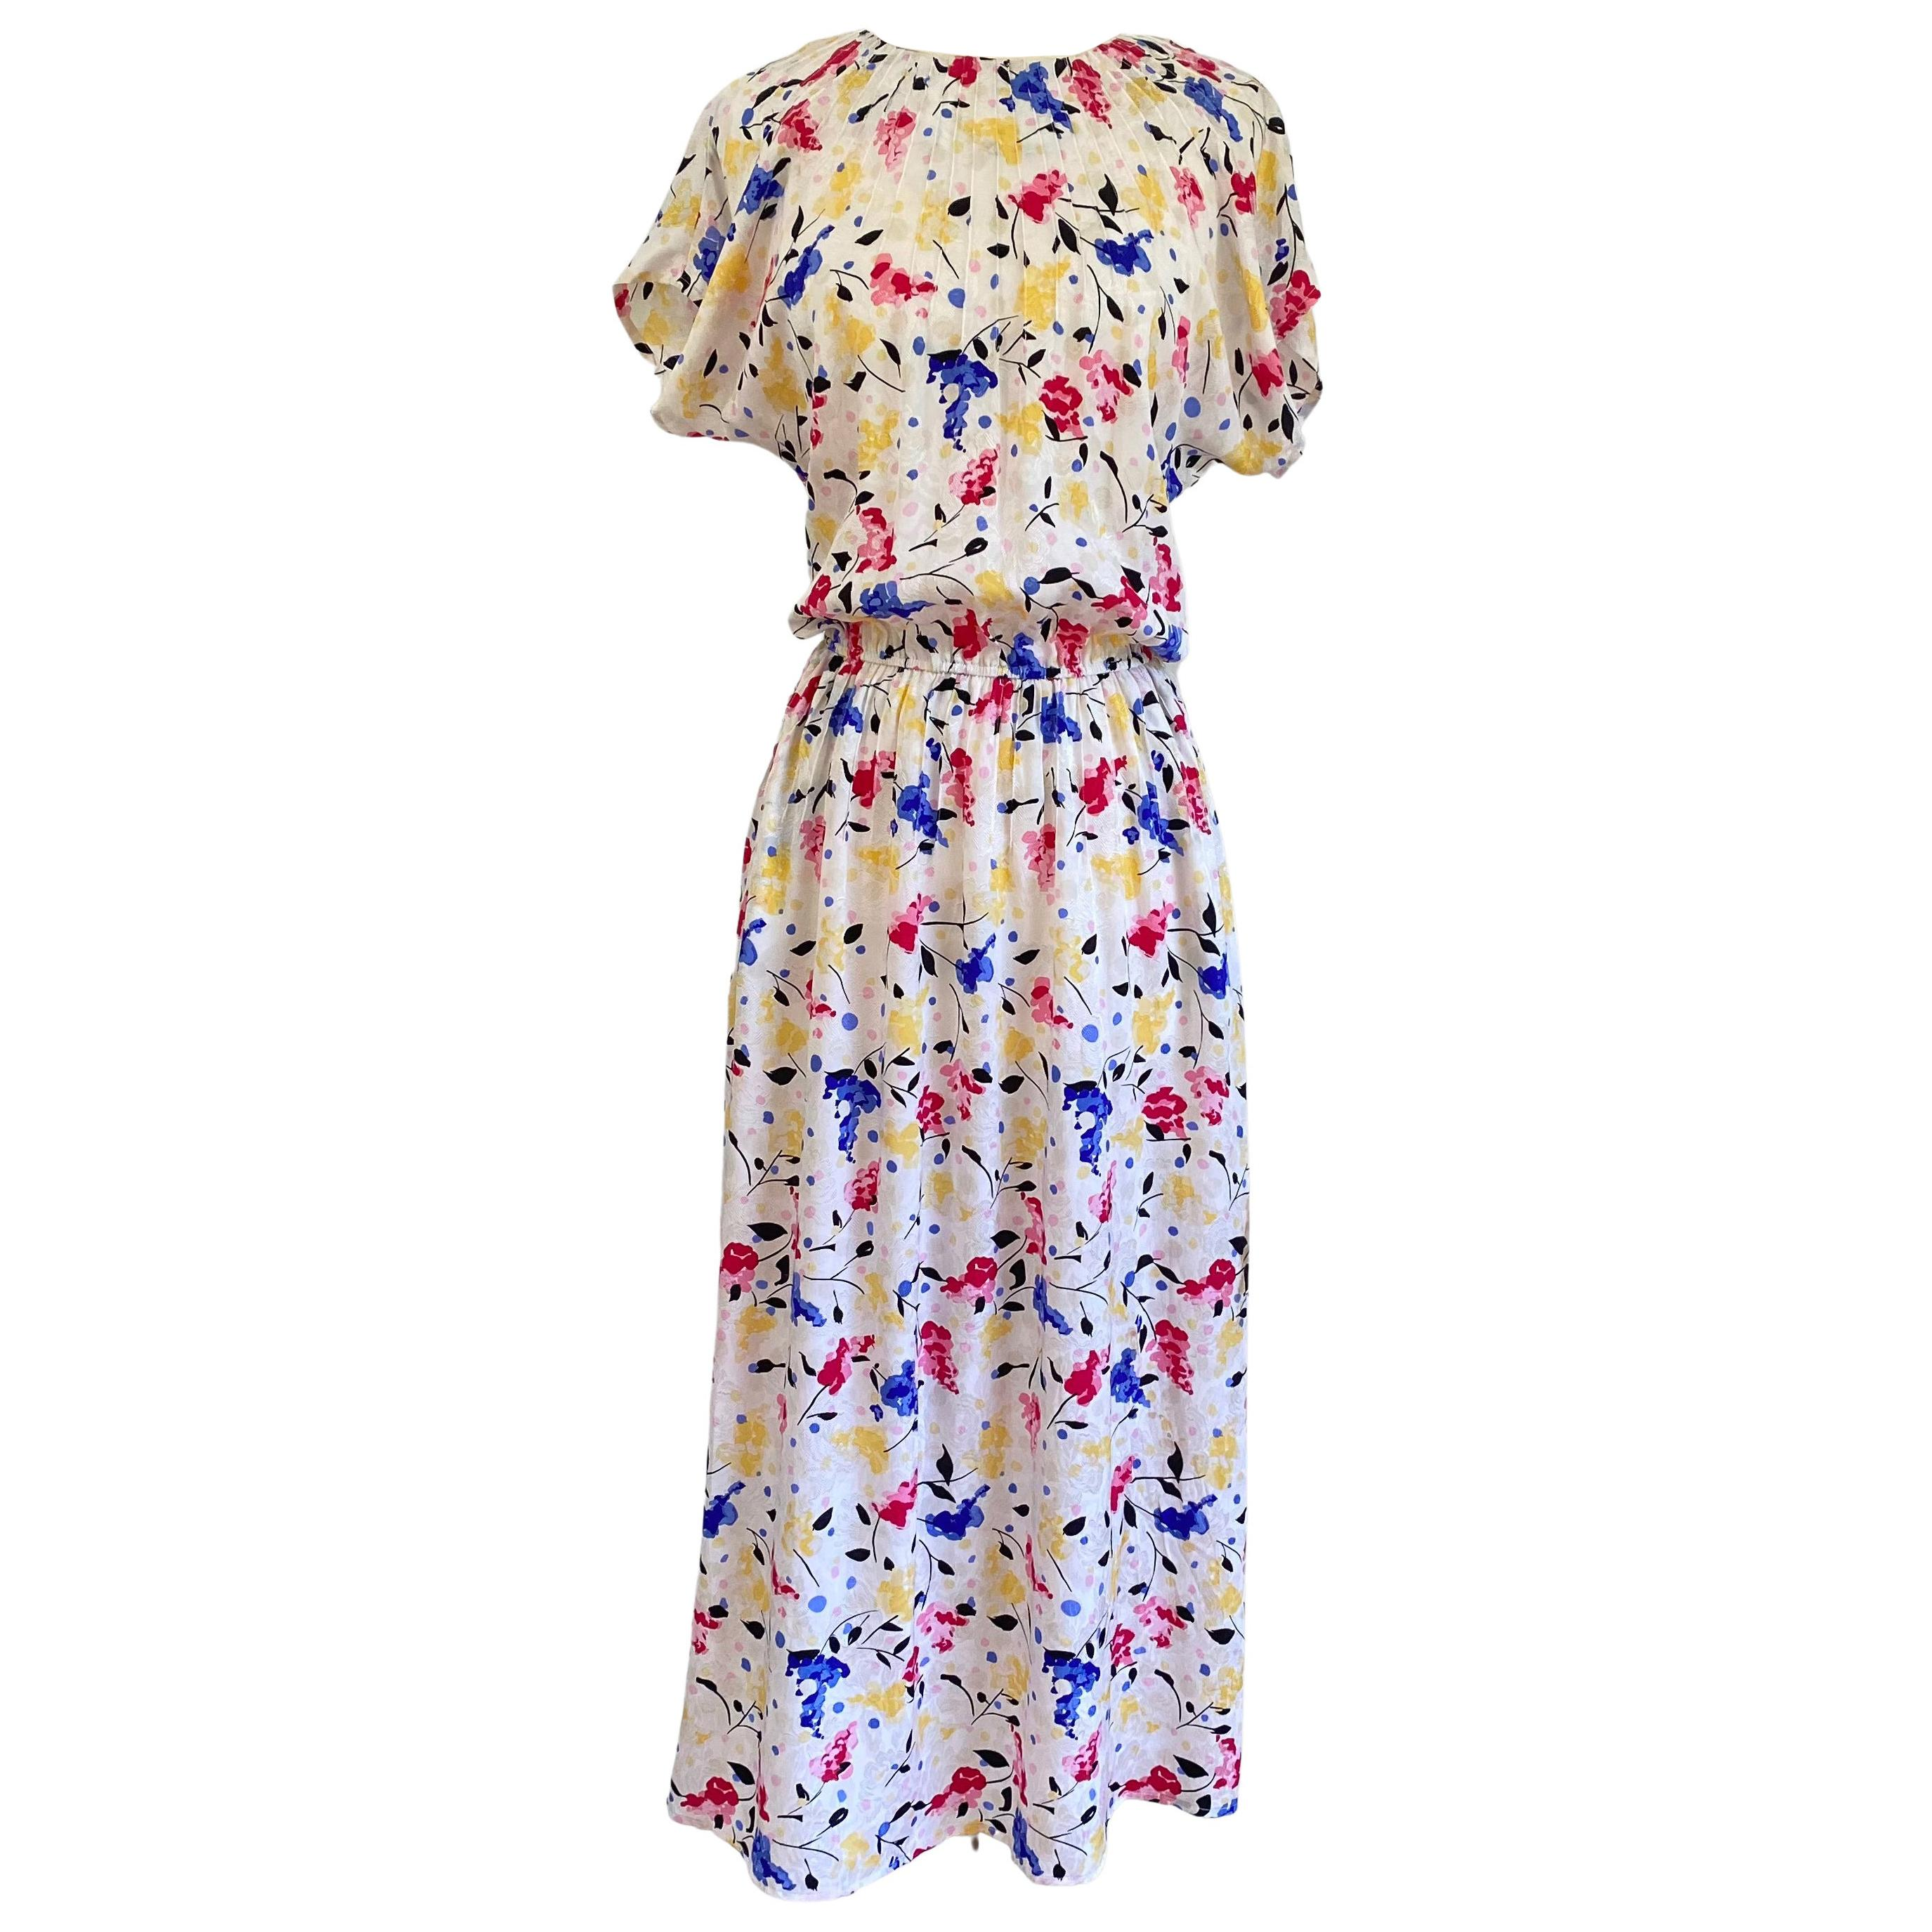 Flora Kung Blooming Lilacs Silk Tea Dress with POCKETS - New